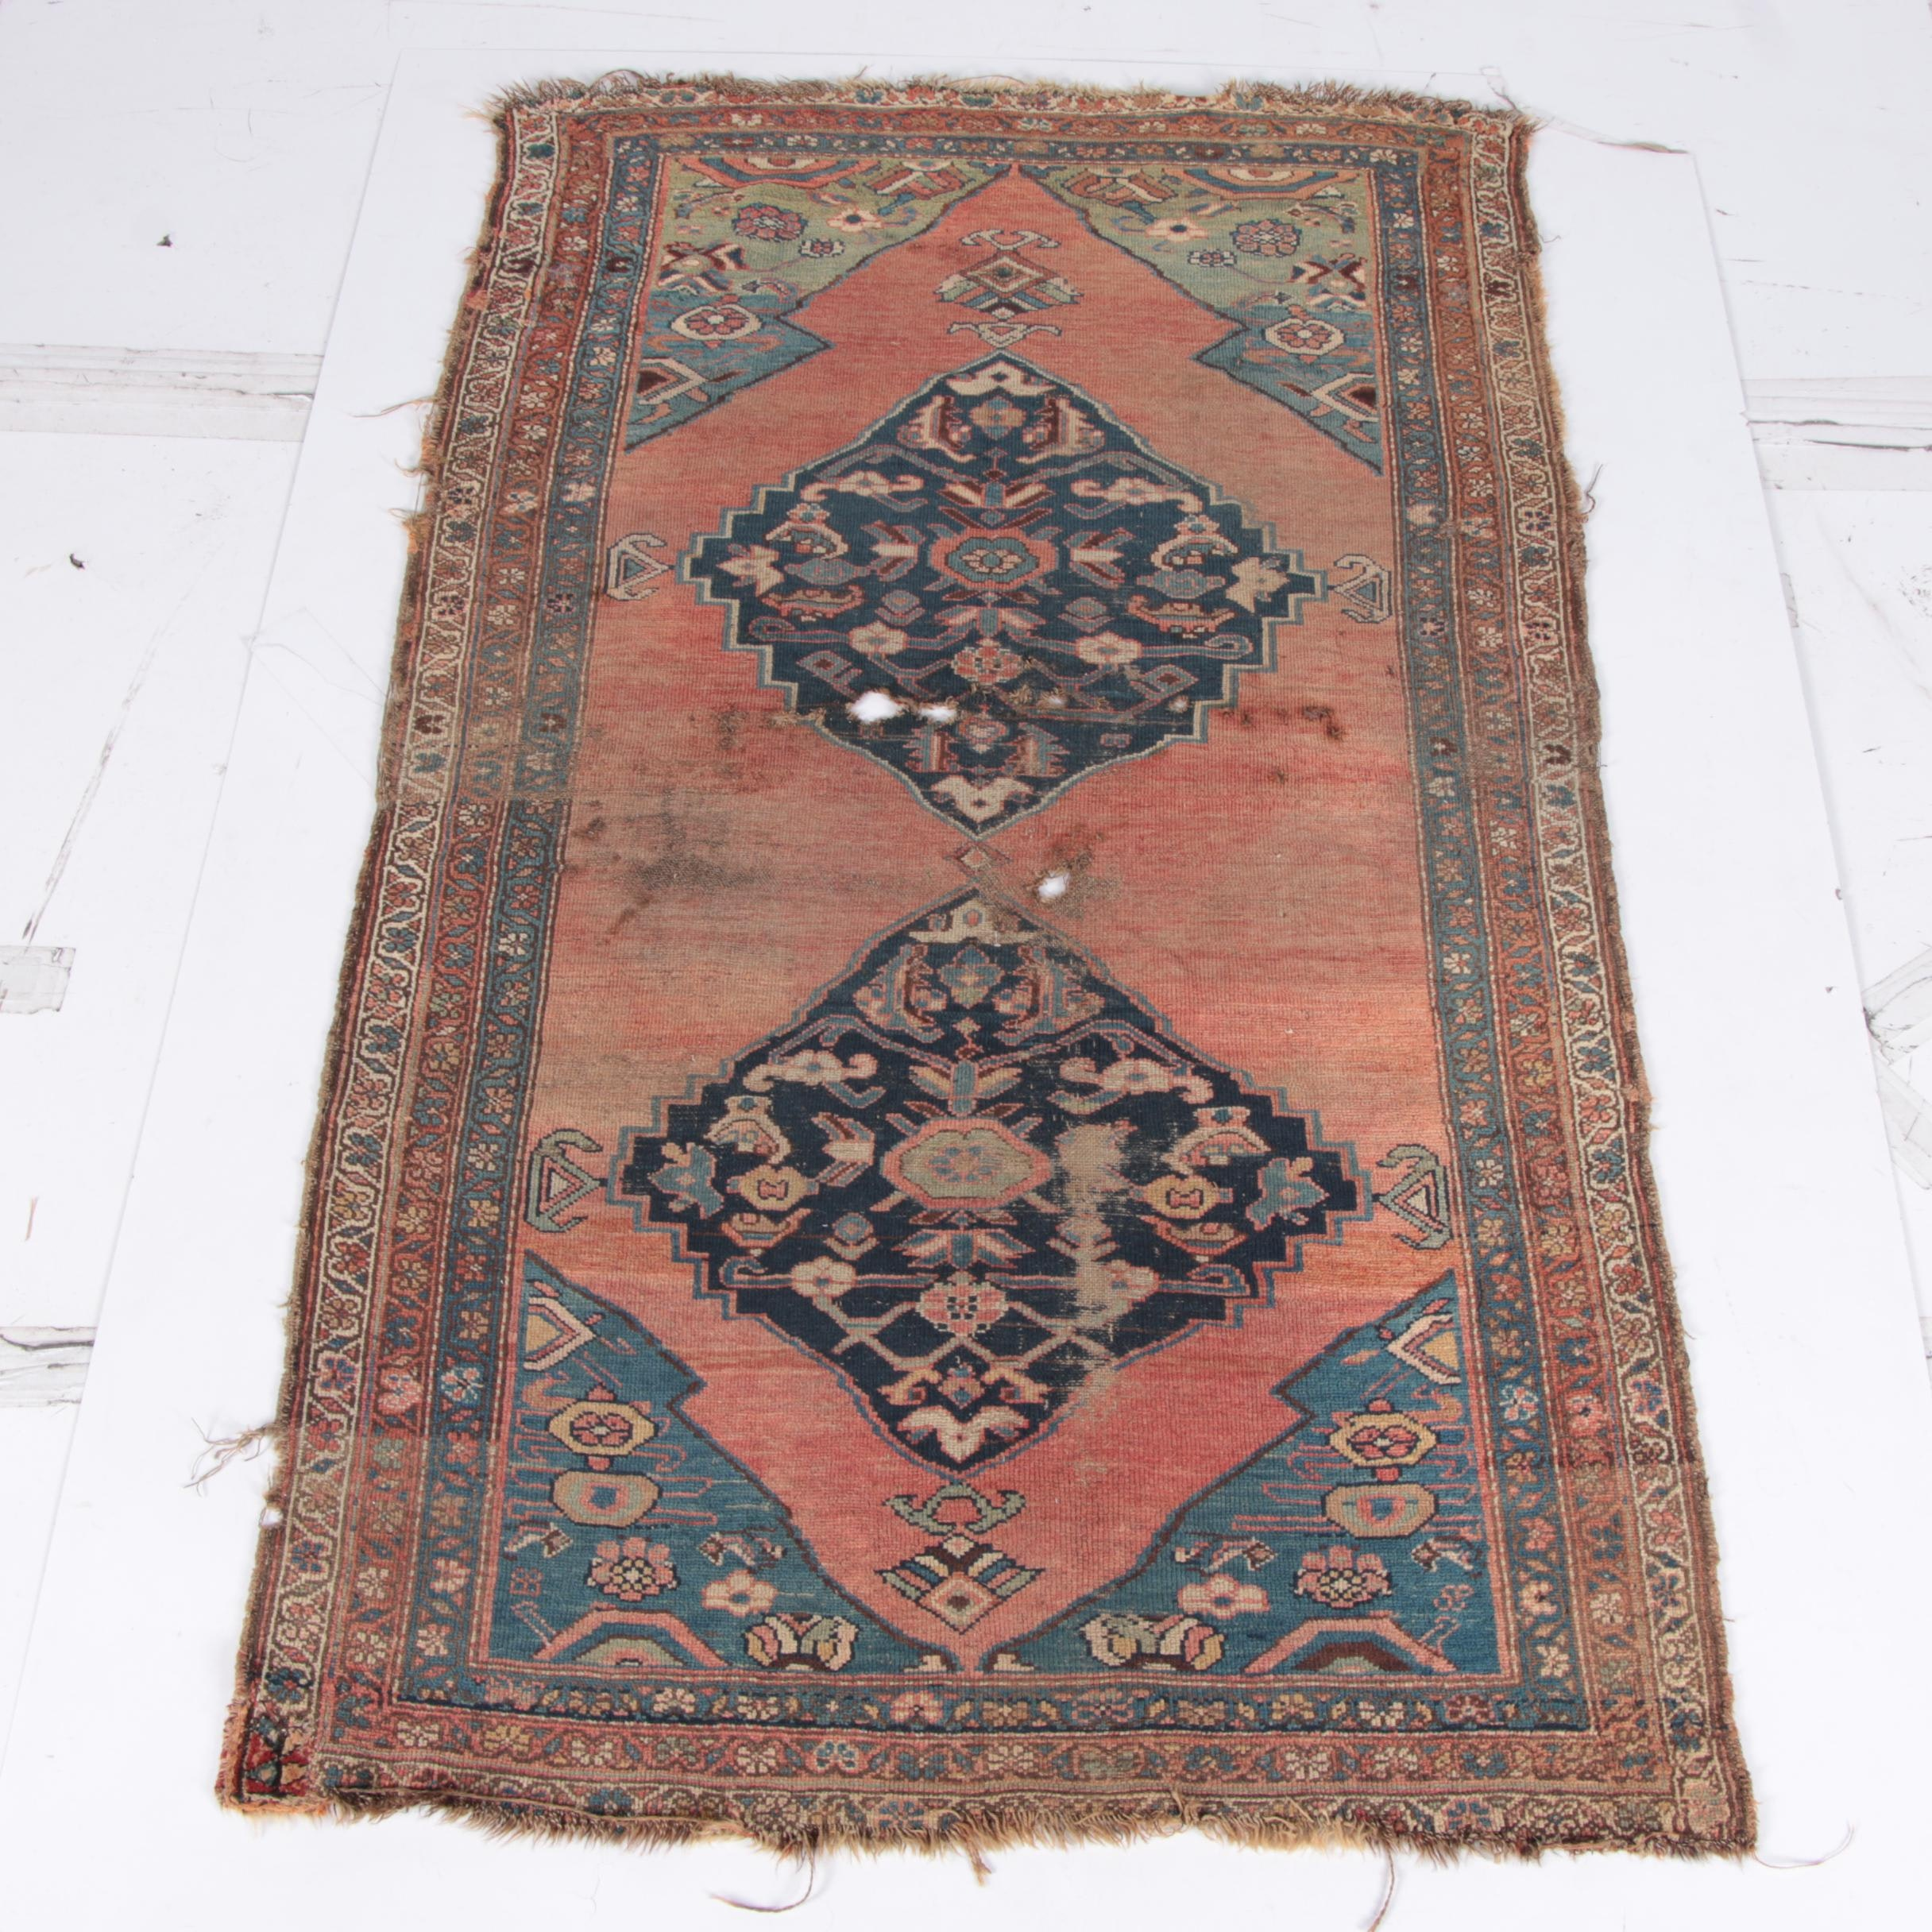 Semi- Antique Hand-Knotted Karaja Wool Accent Rug